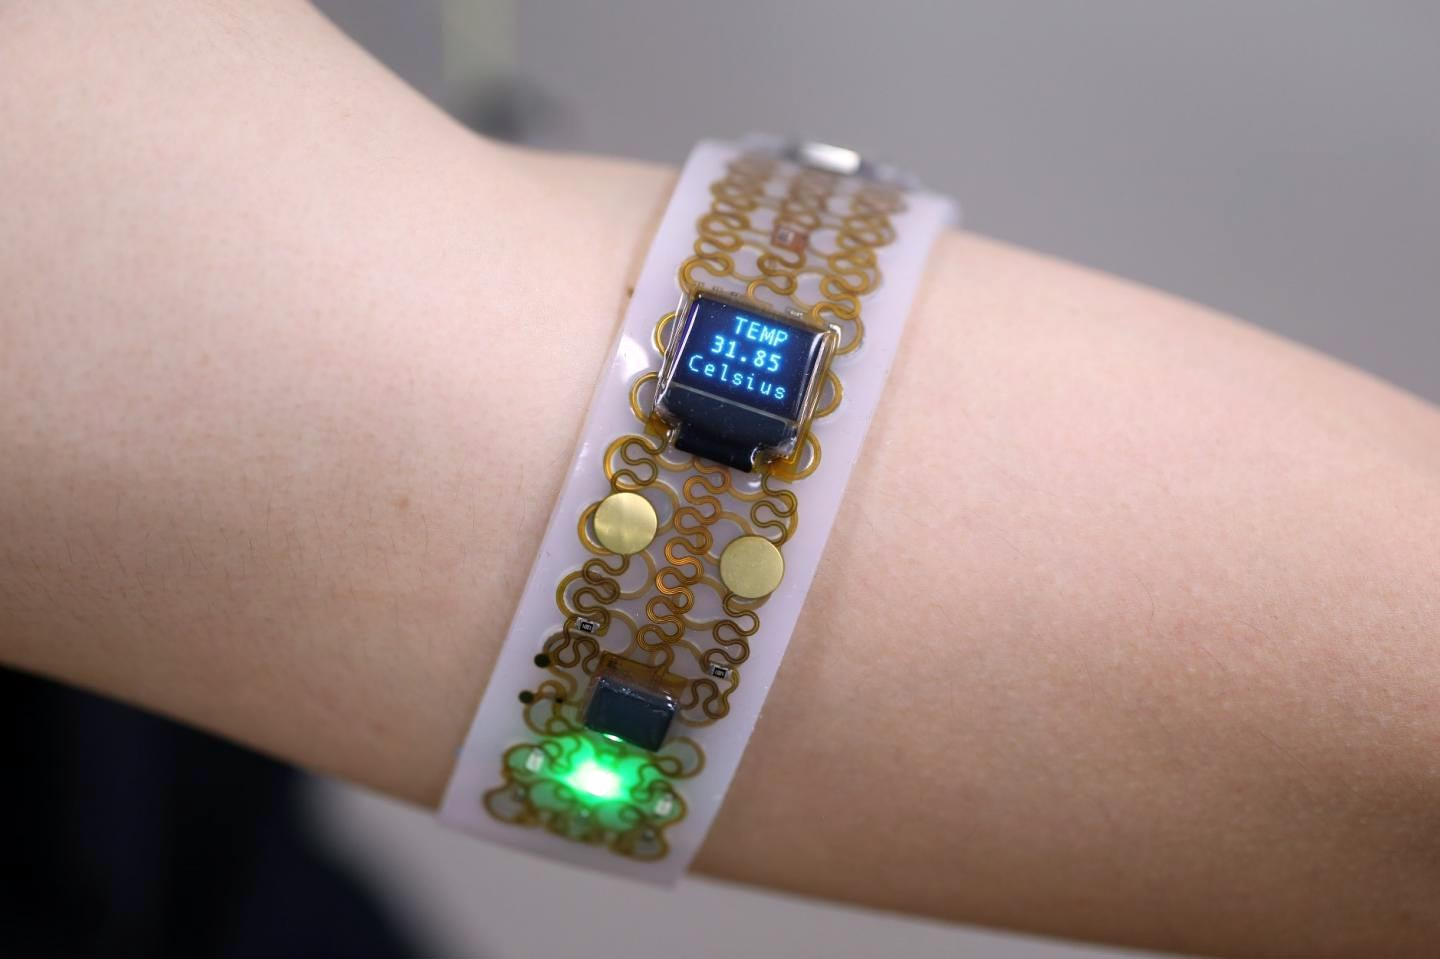 New Electronics Mechanically Transform Into a Wearable Device for Seamless Integration With the Skin